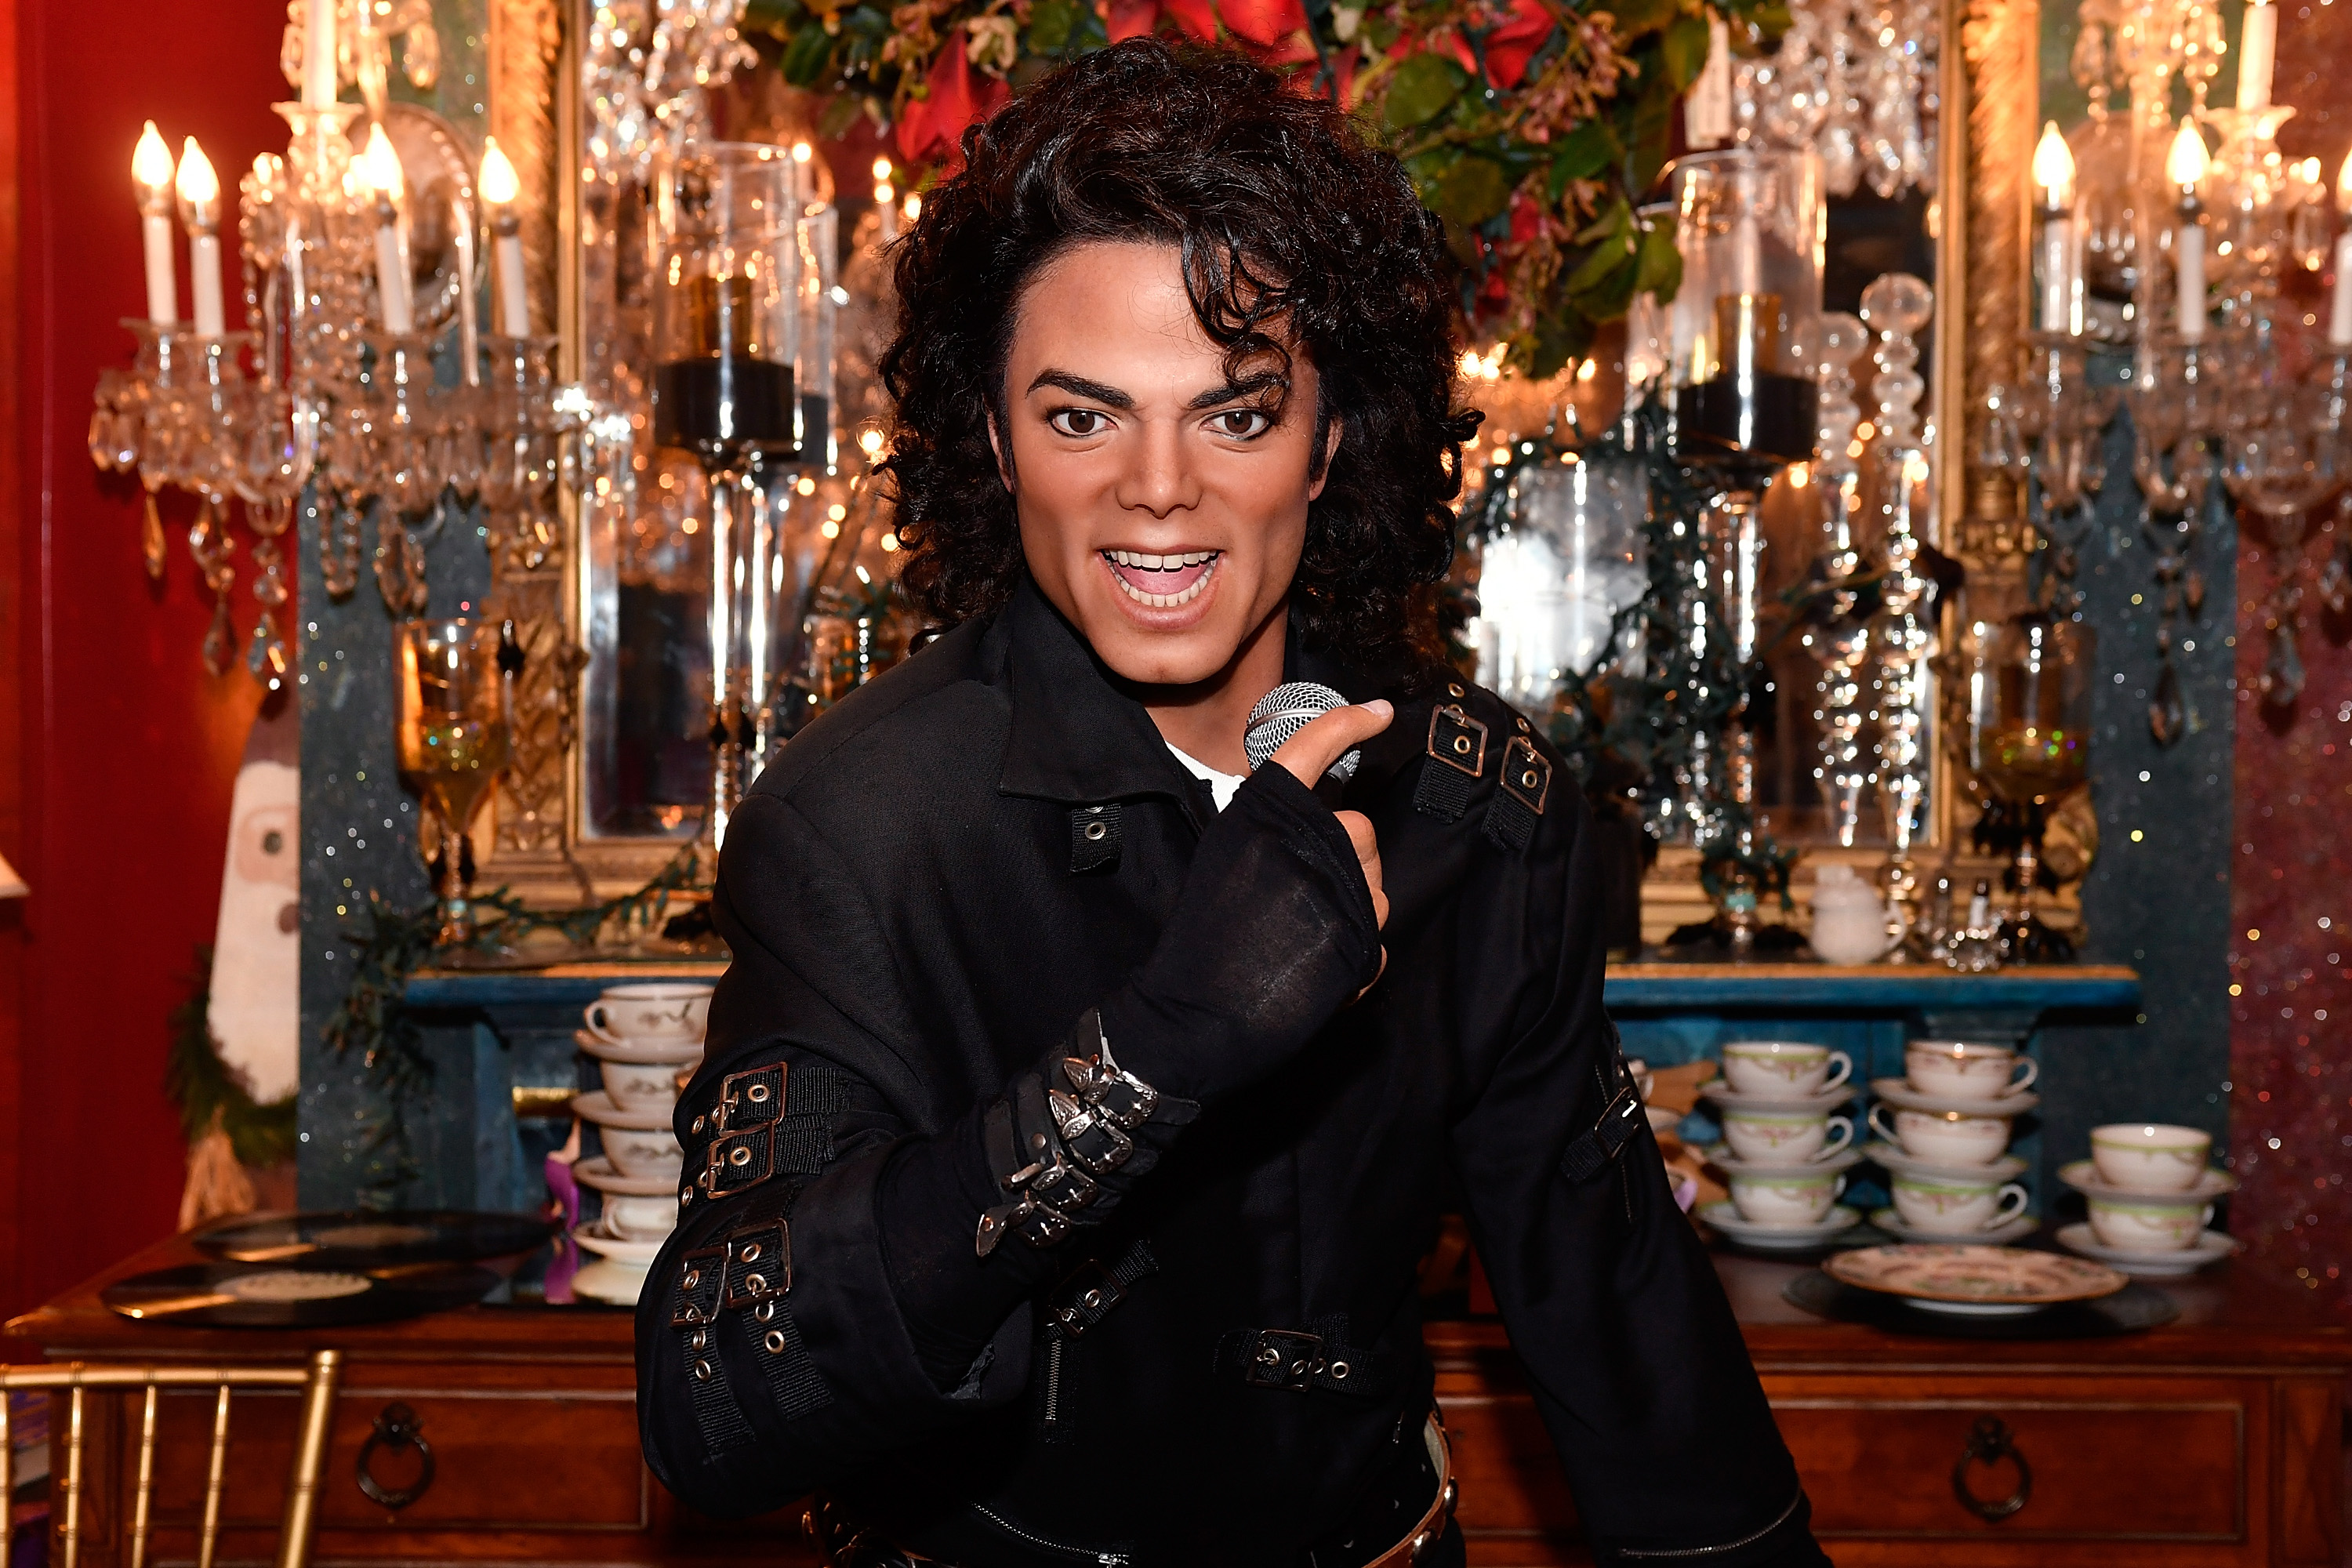 Madame Tussauds DC Celebrates Michael Jackson's Birthday With Three Figures of the Music Icon at the Mansion on O Street